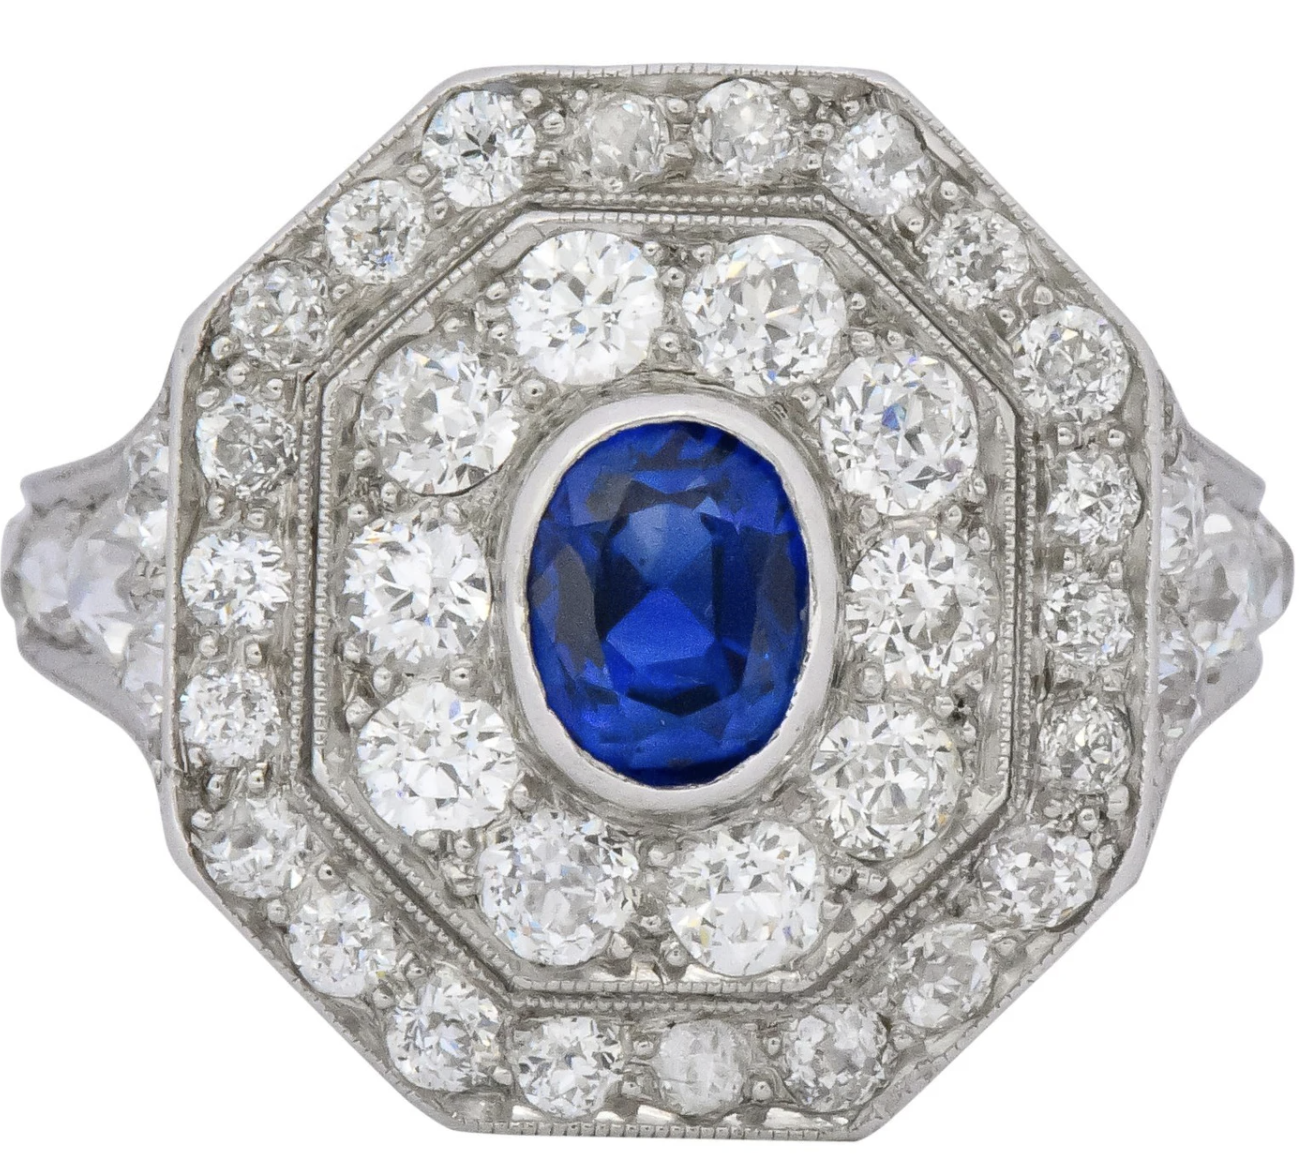 Oval Cut Sapphire Centering an Octagonal double halo dinner ring Art Deco Antique Jewelry